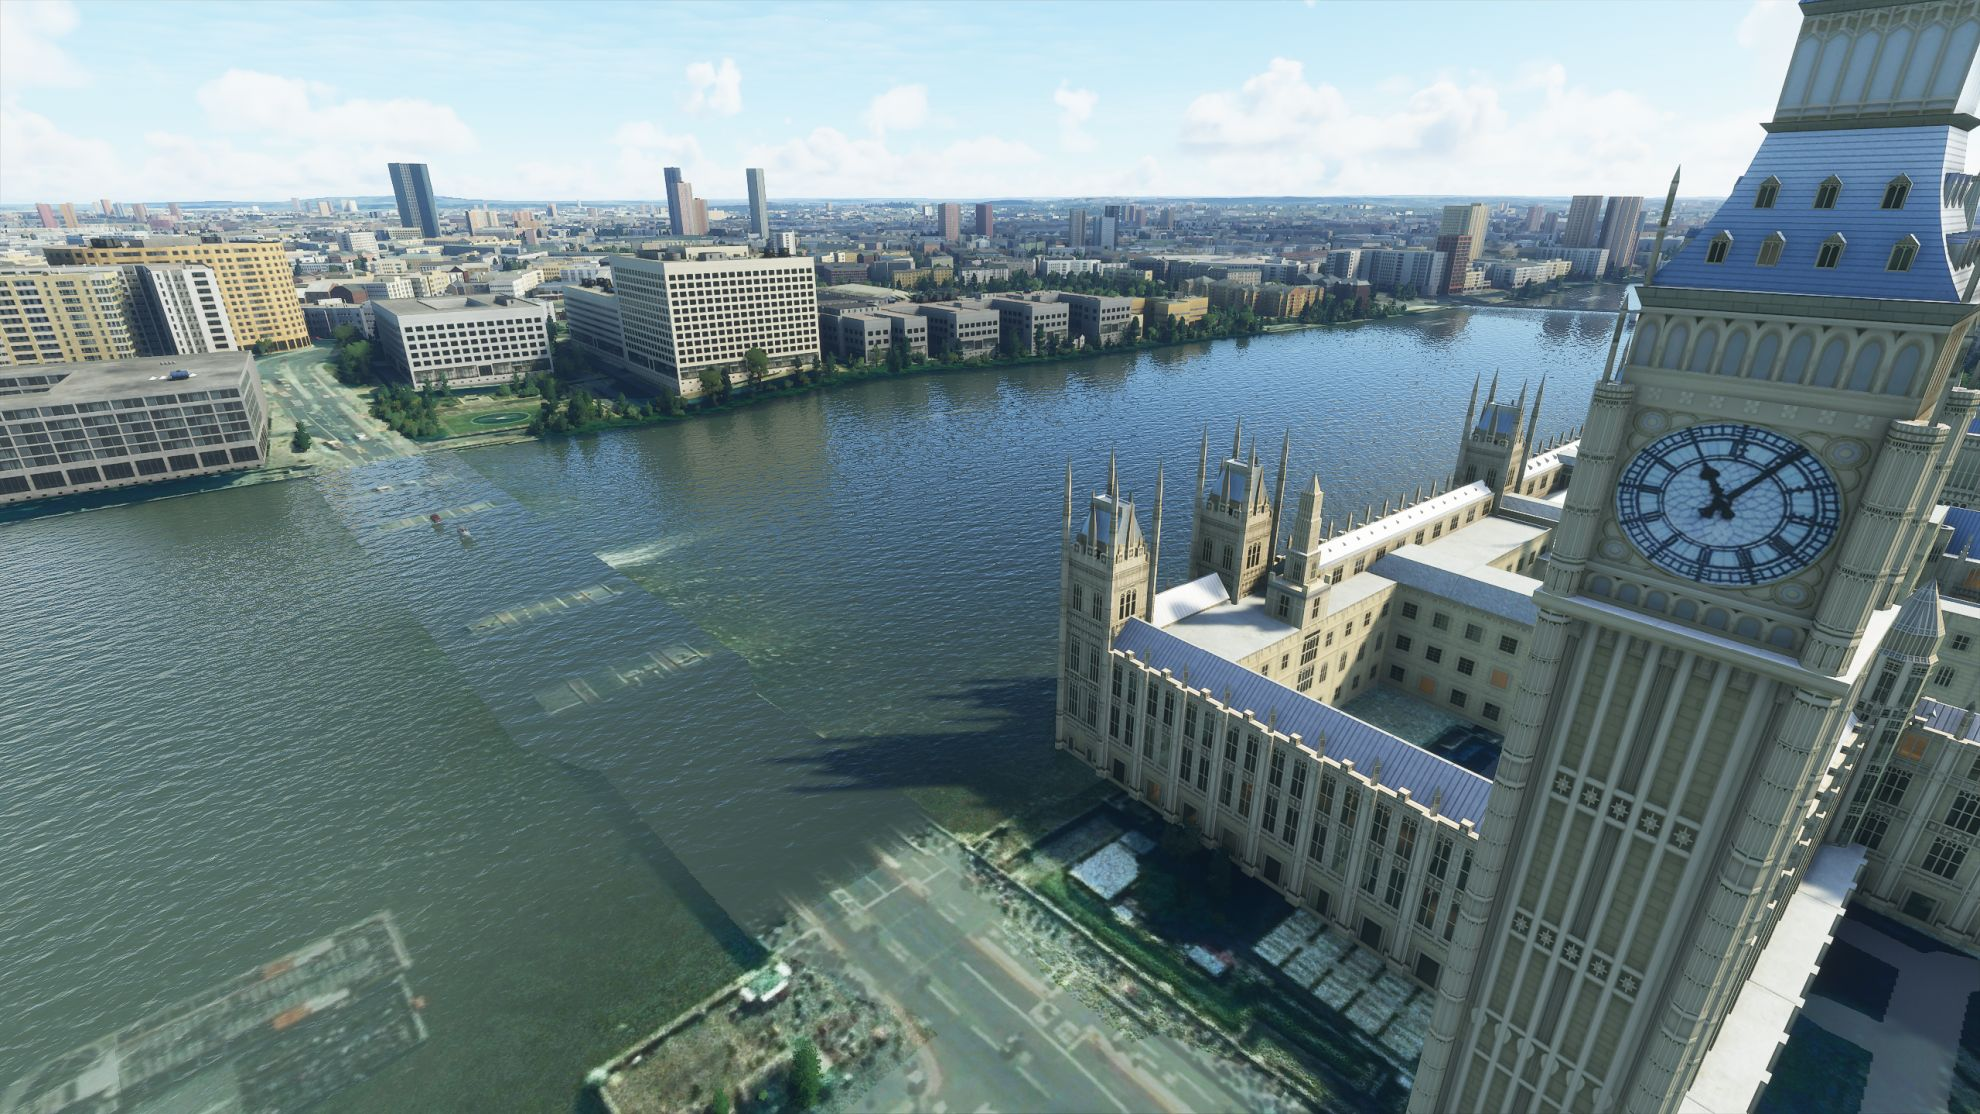 A bridge in London spawned underwater